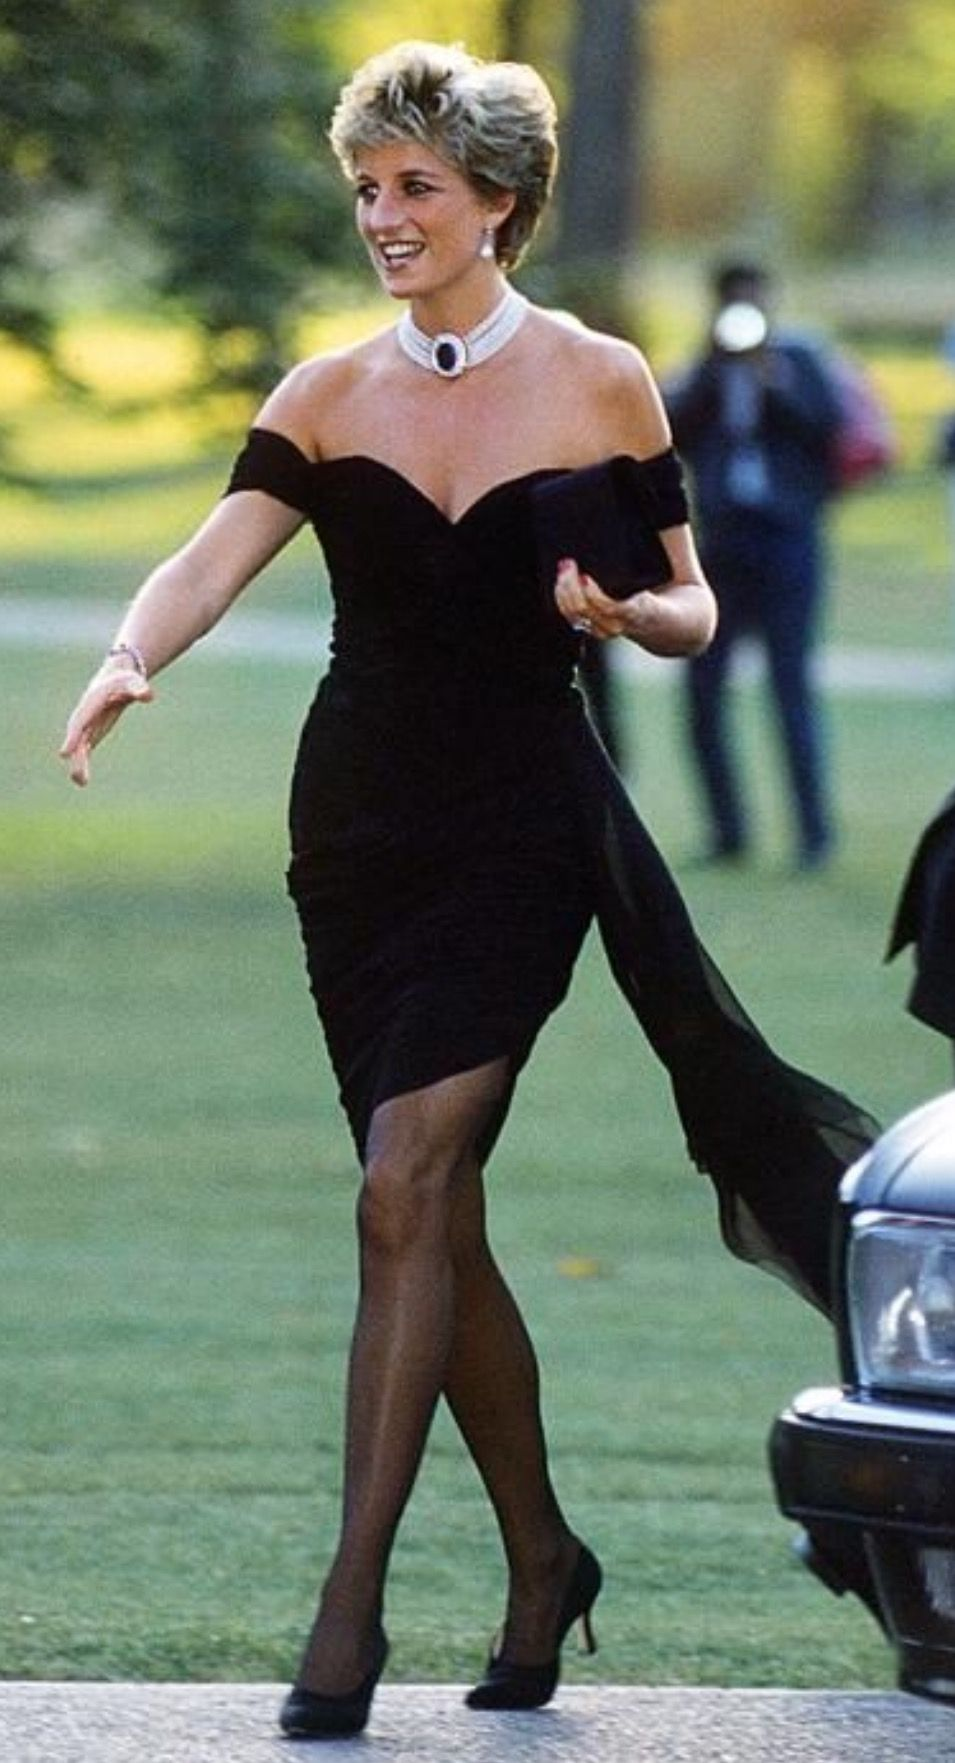 This Black Dress will always be remembered as the one she